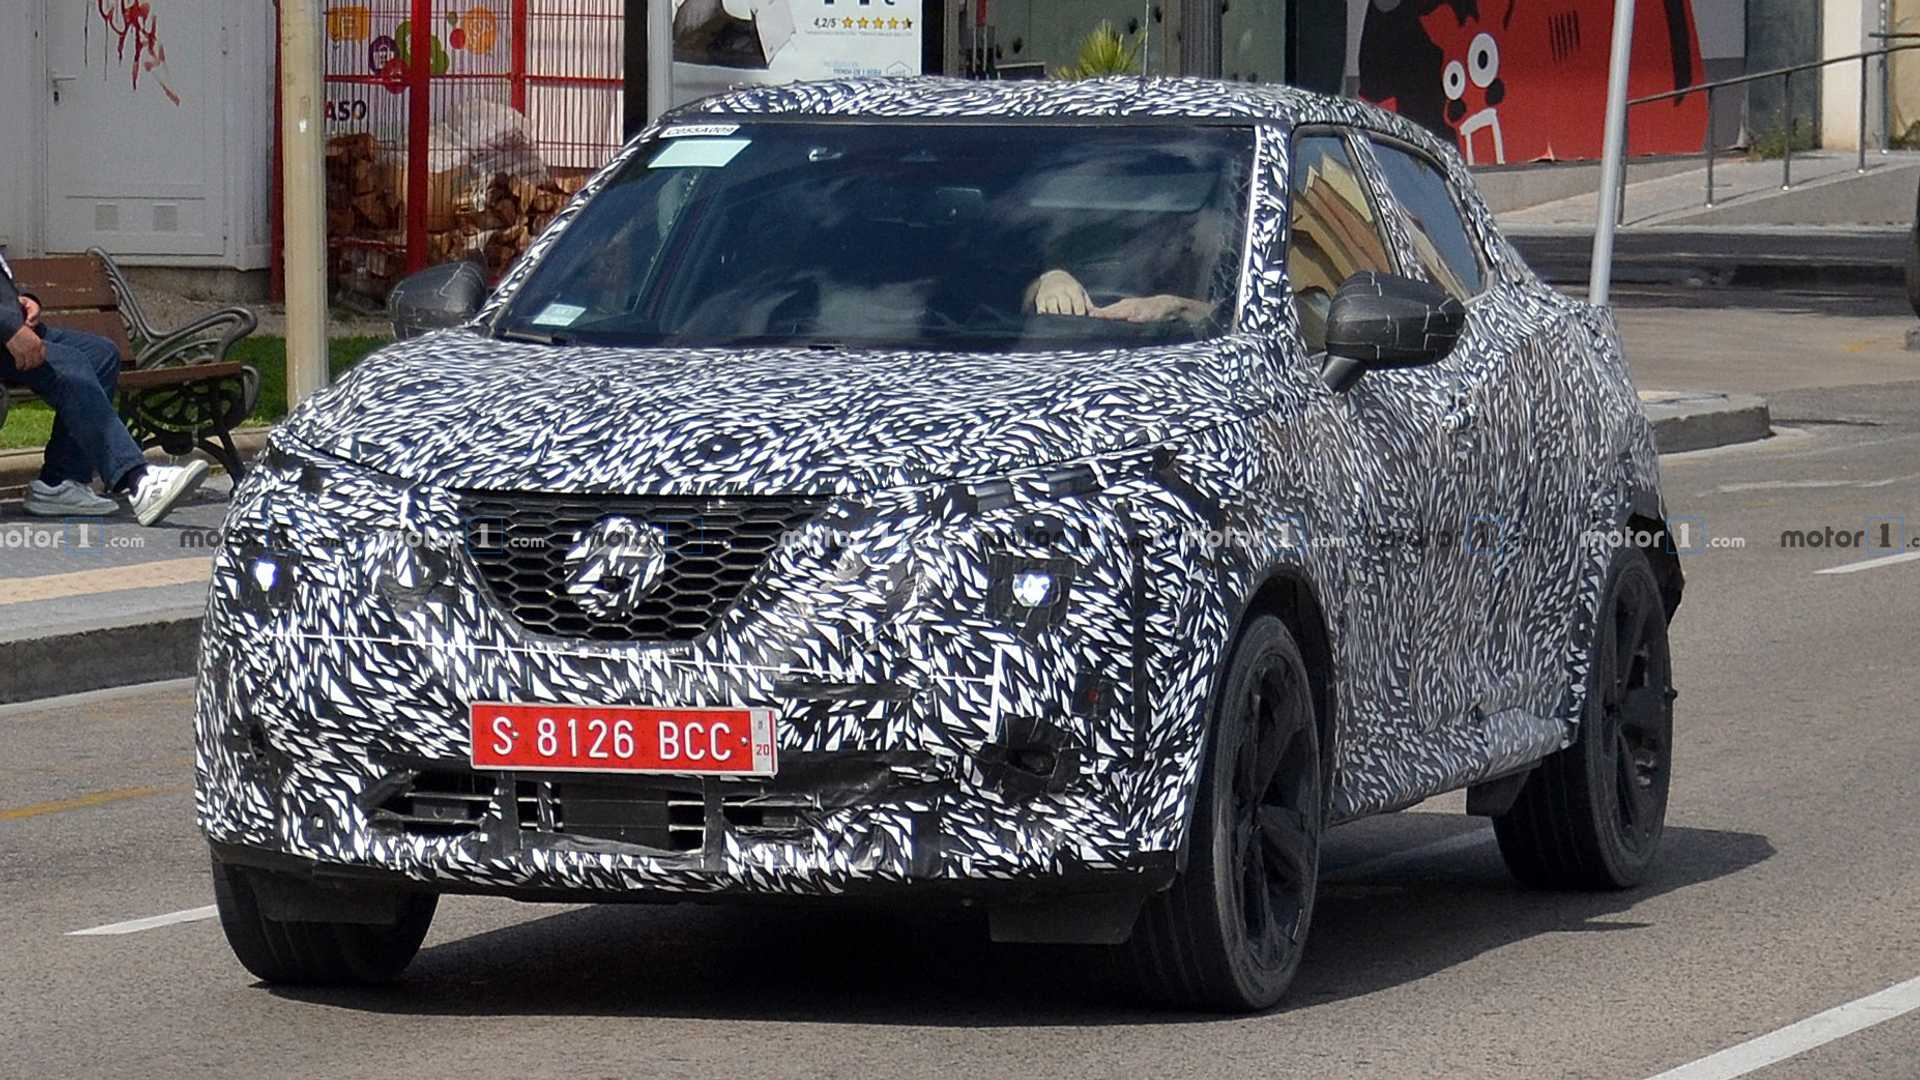 2018 Nissan Juke: Redesign, Changes, Platfrom, Price >> All New Nissan Juke Spied With Major Design Changes